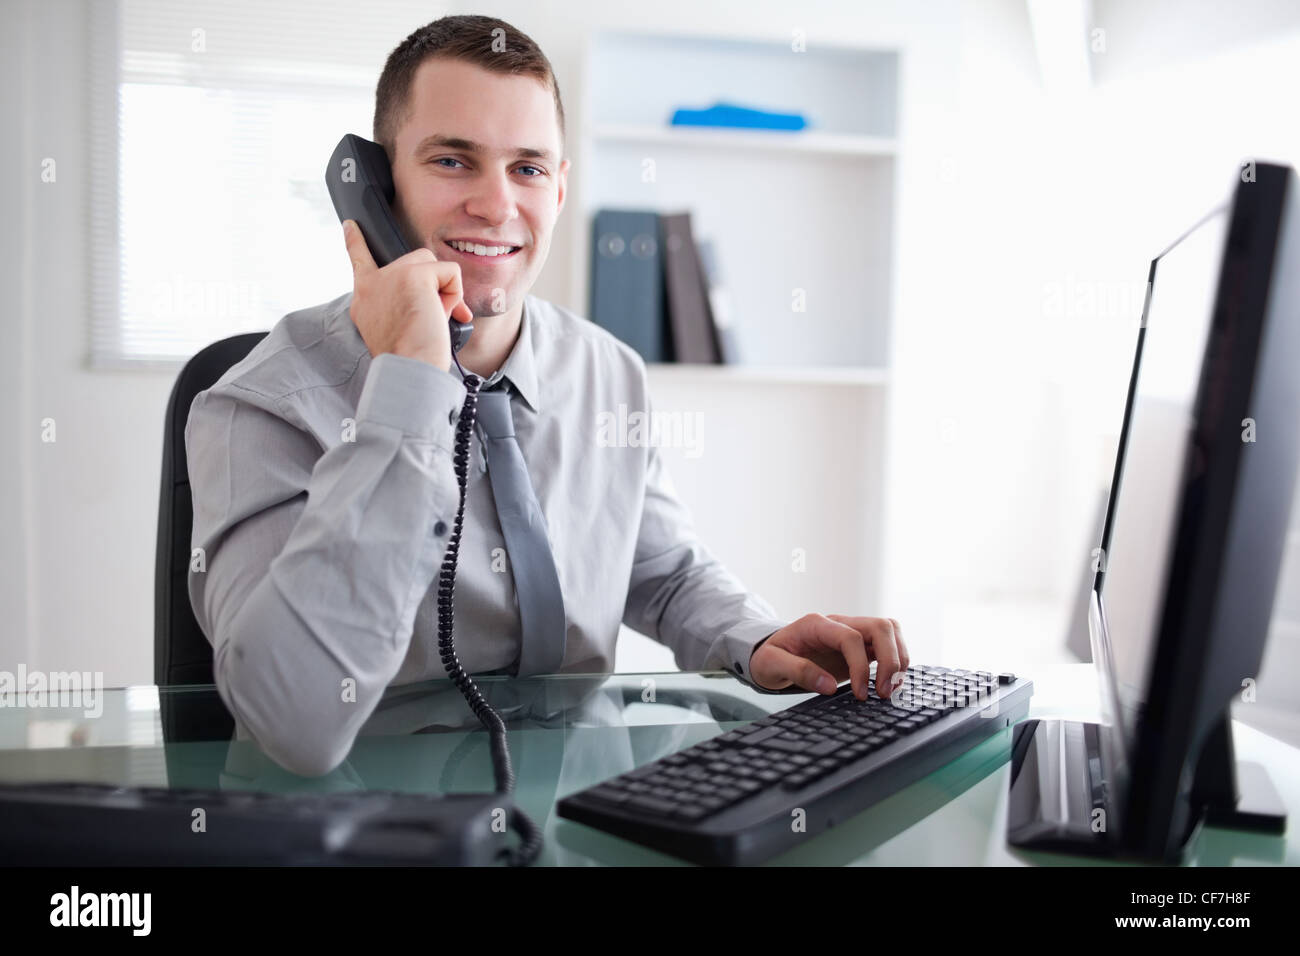 Businessman having a dialogue on the phone - Stock Image